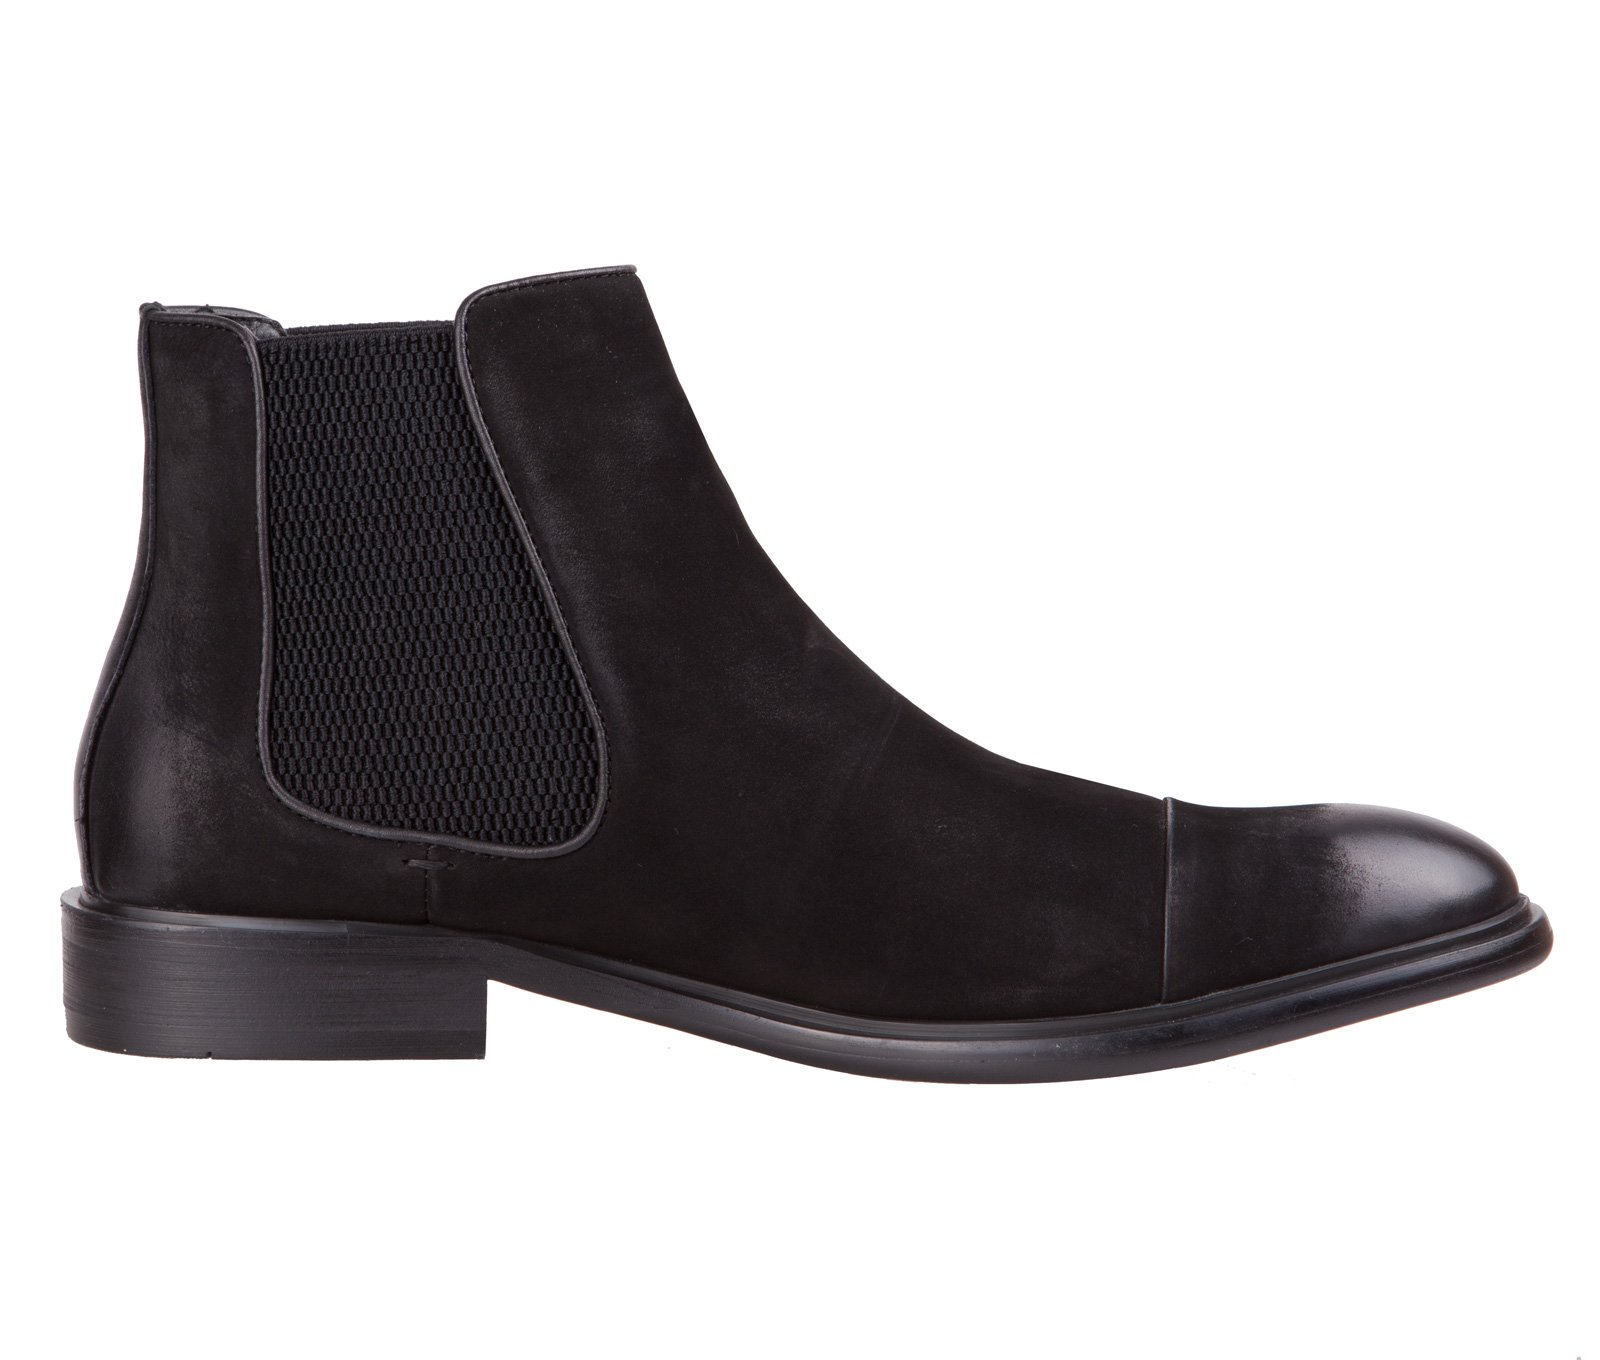 BALDI Men's garwood Black Leather Formal/Casual Chelsea Slipon Boots (EU 43/US 10)